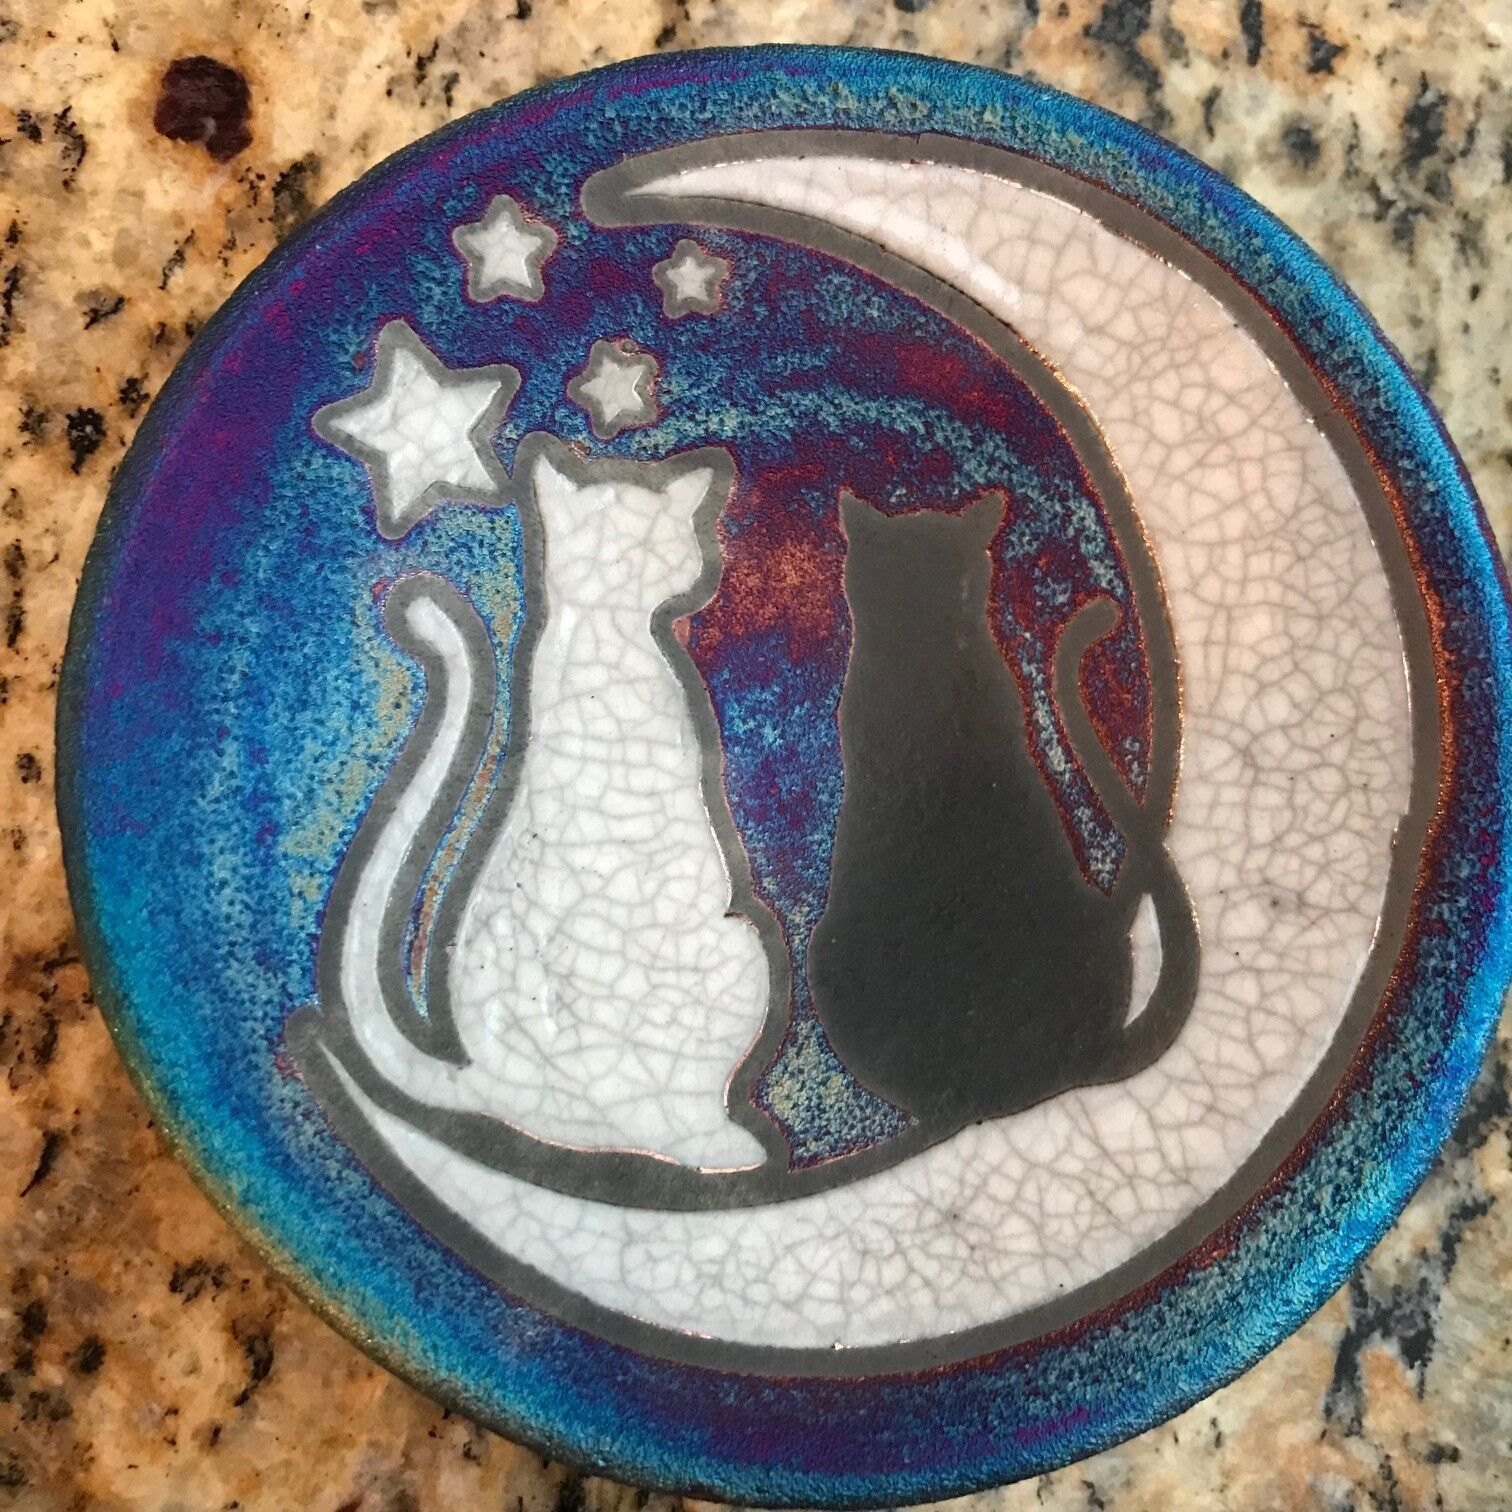 Cats and Moon Coaster Raku Pottery, handmade, handsigned - NEW